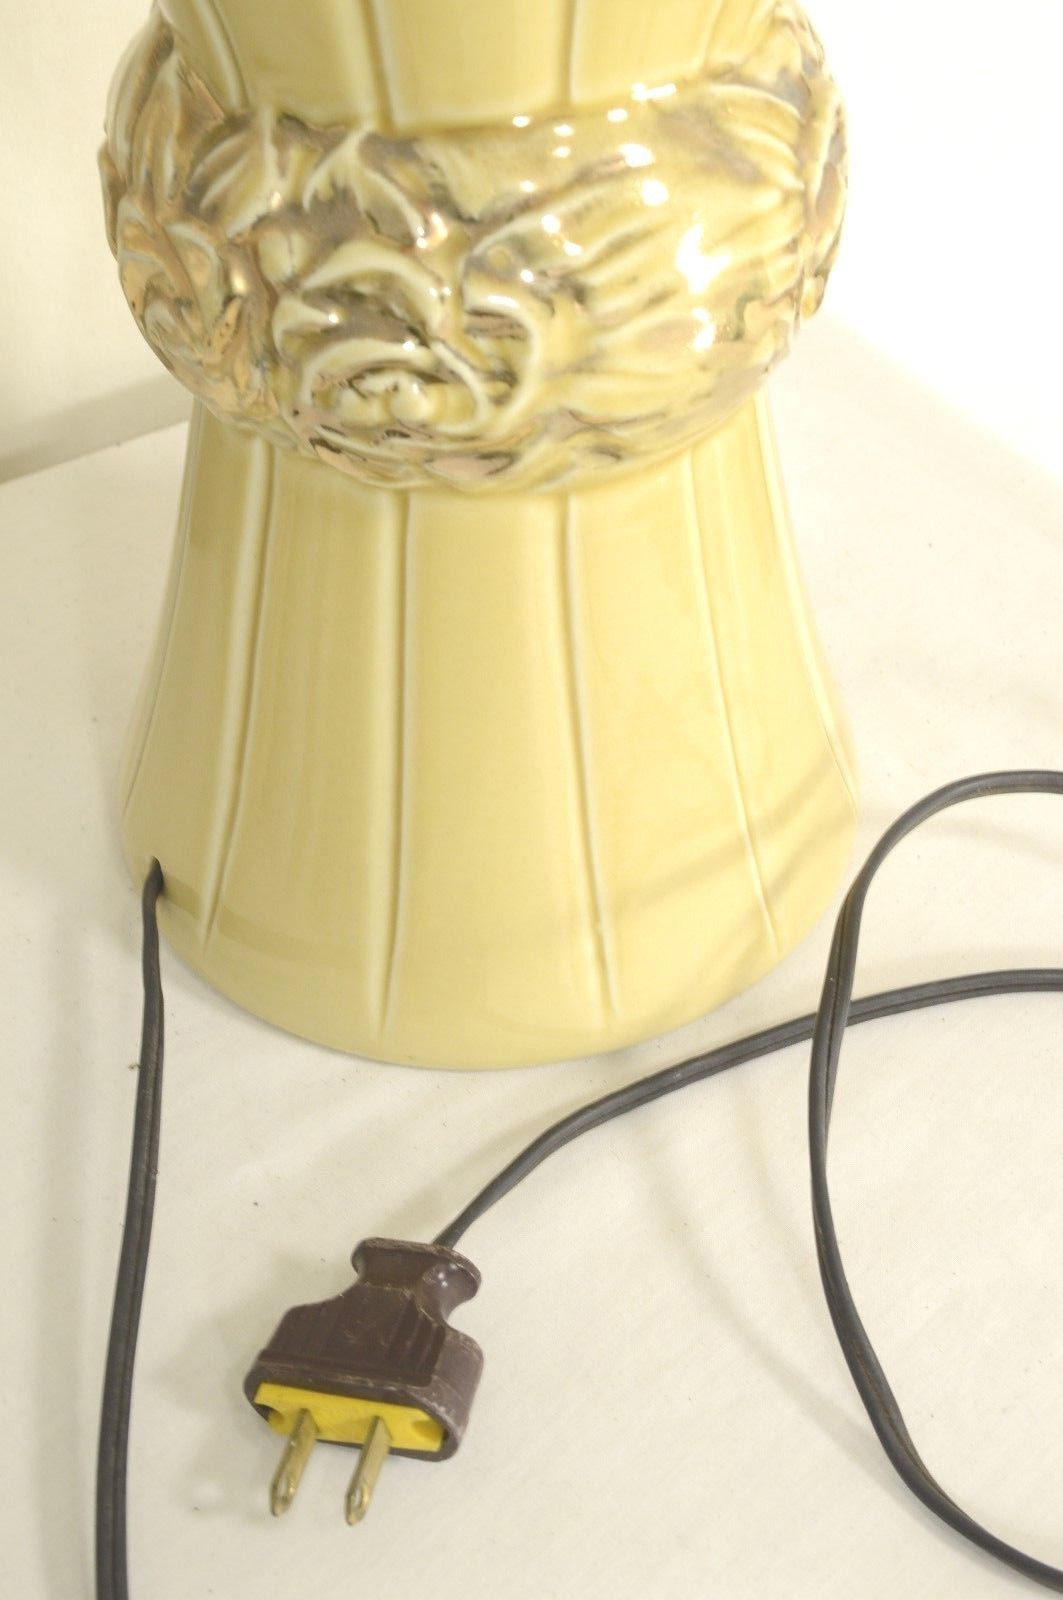 Lamp Mid-Century 1950 gold on gold table lamp numbered 57-221